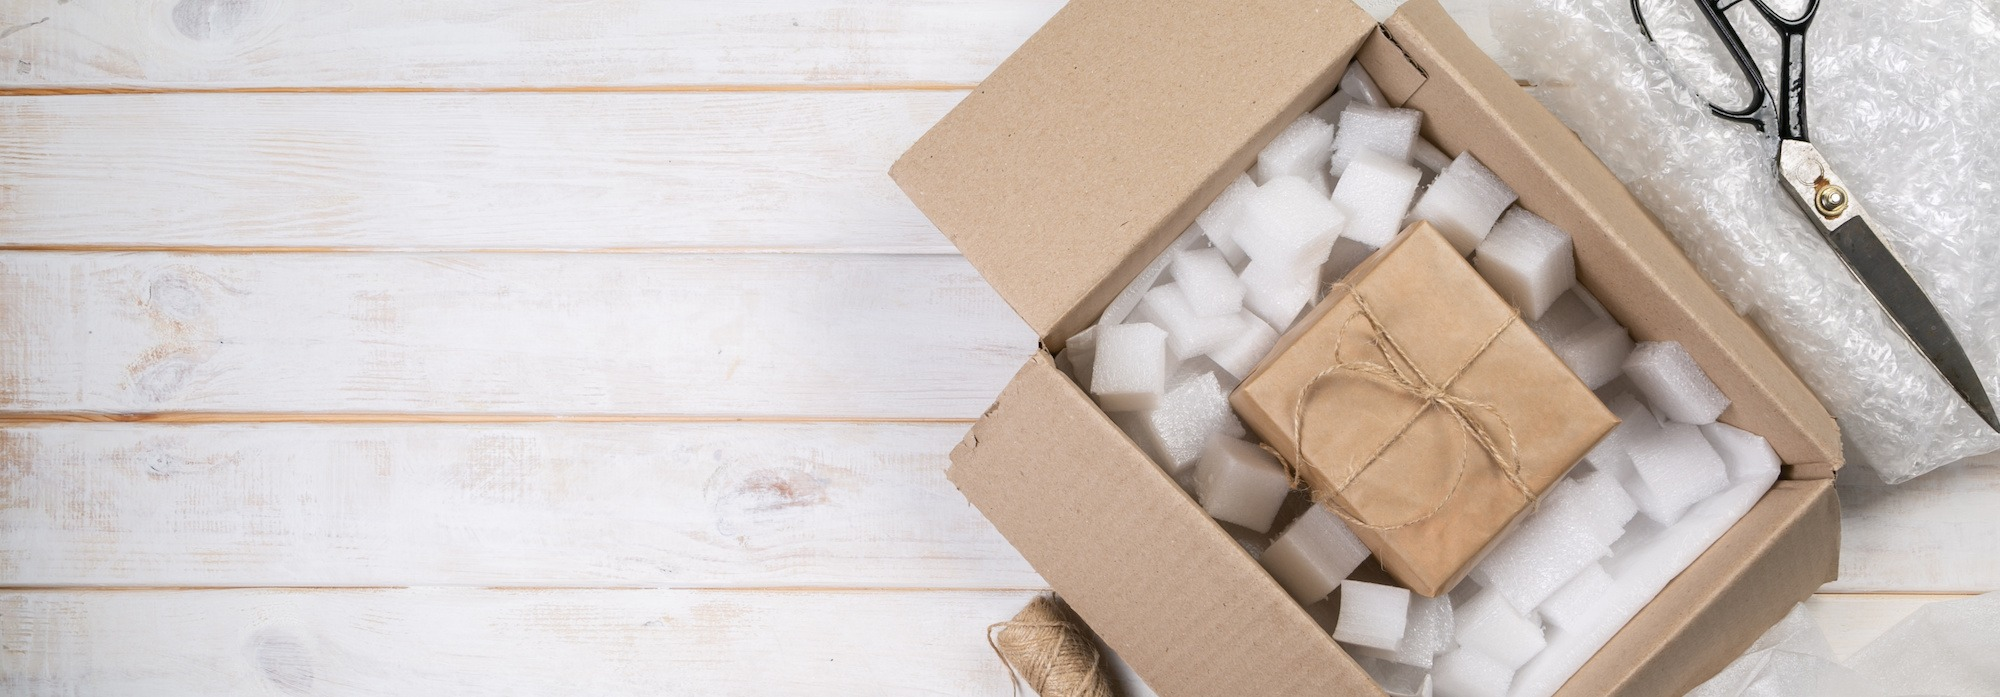 A Social Media Tip for Online Retailers: How to Optimise Your Deliveries